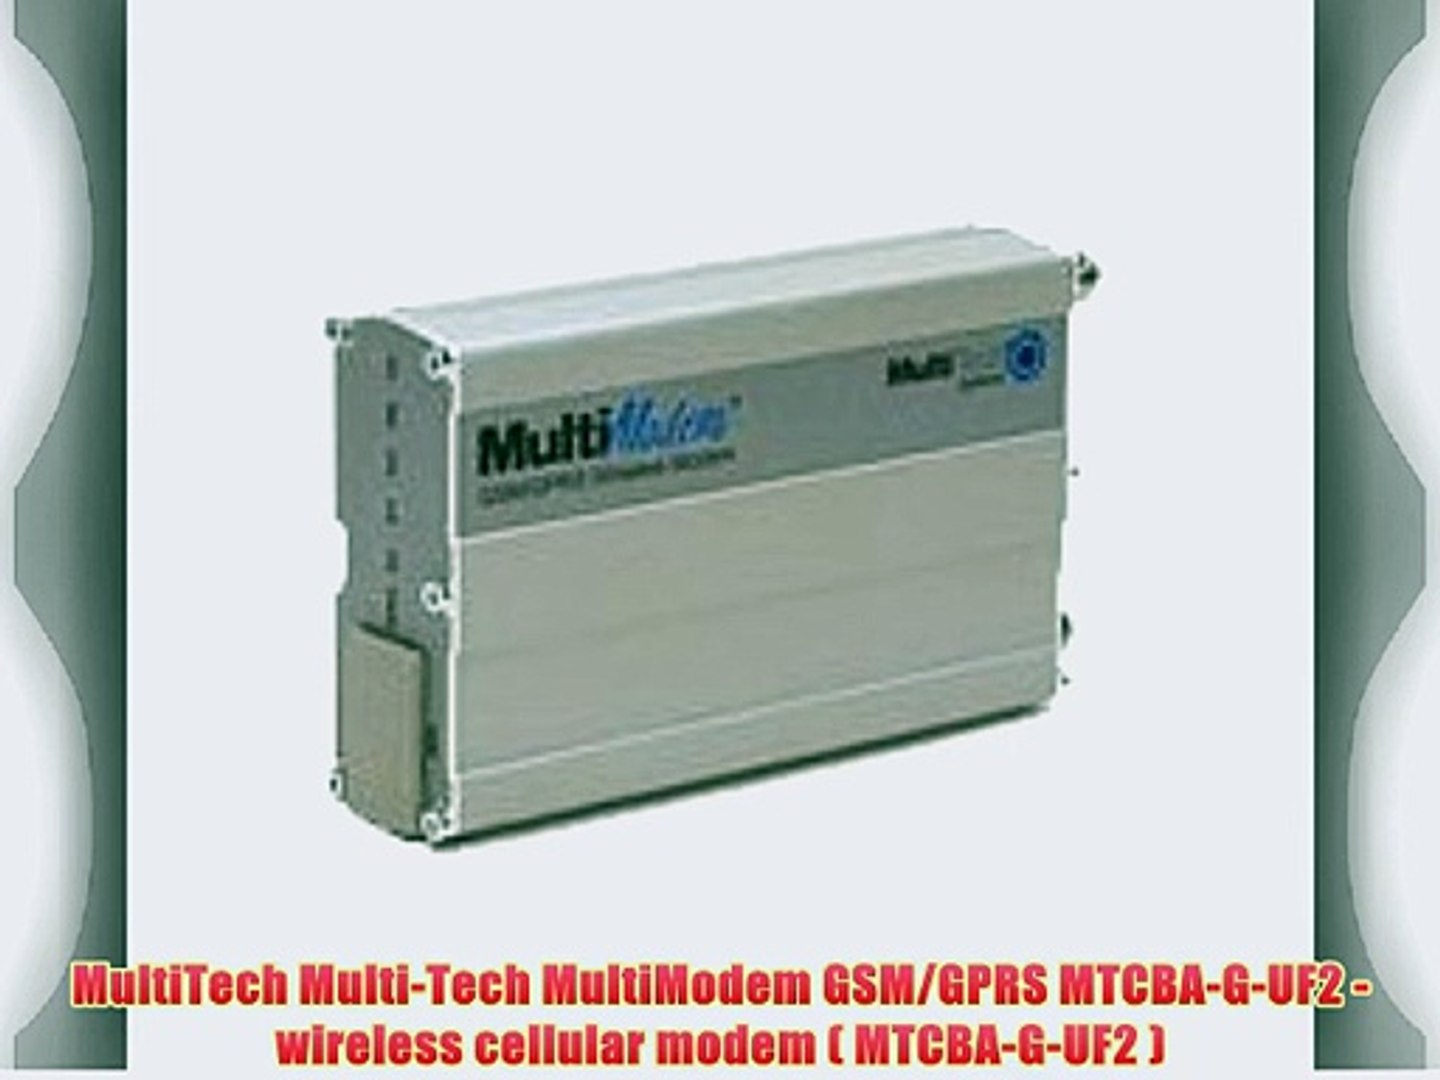 MultiTech Multi-Tech MultiModem GSM/GPRS MTCBA-G-UF2